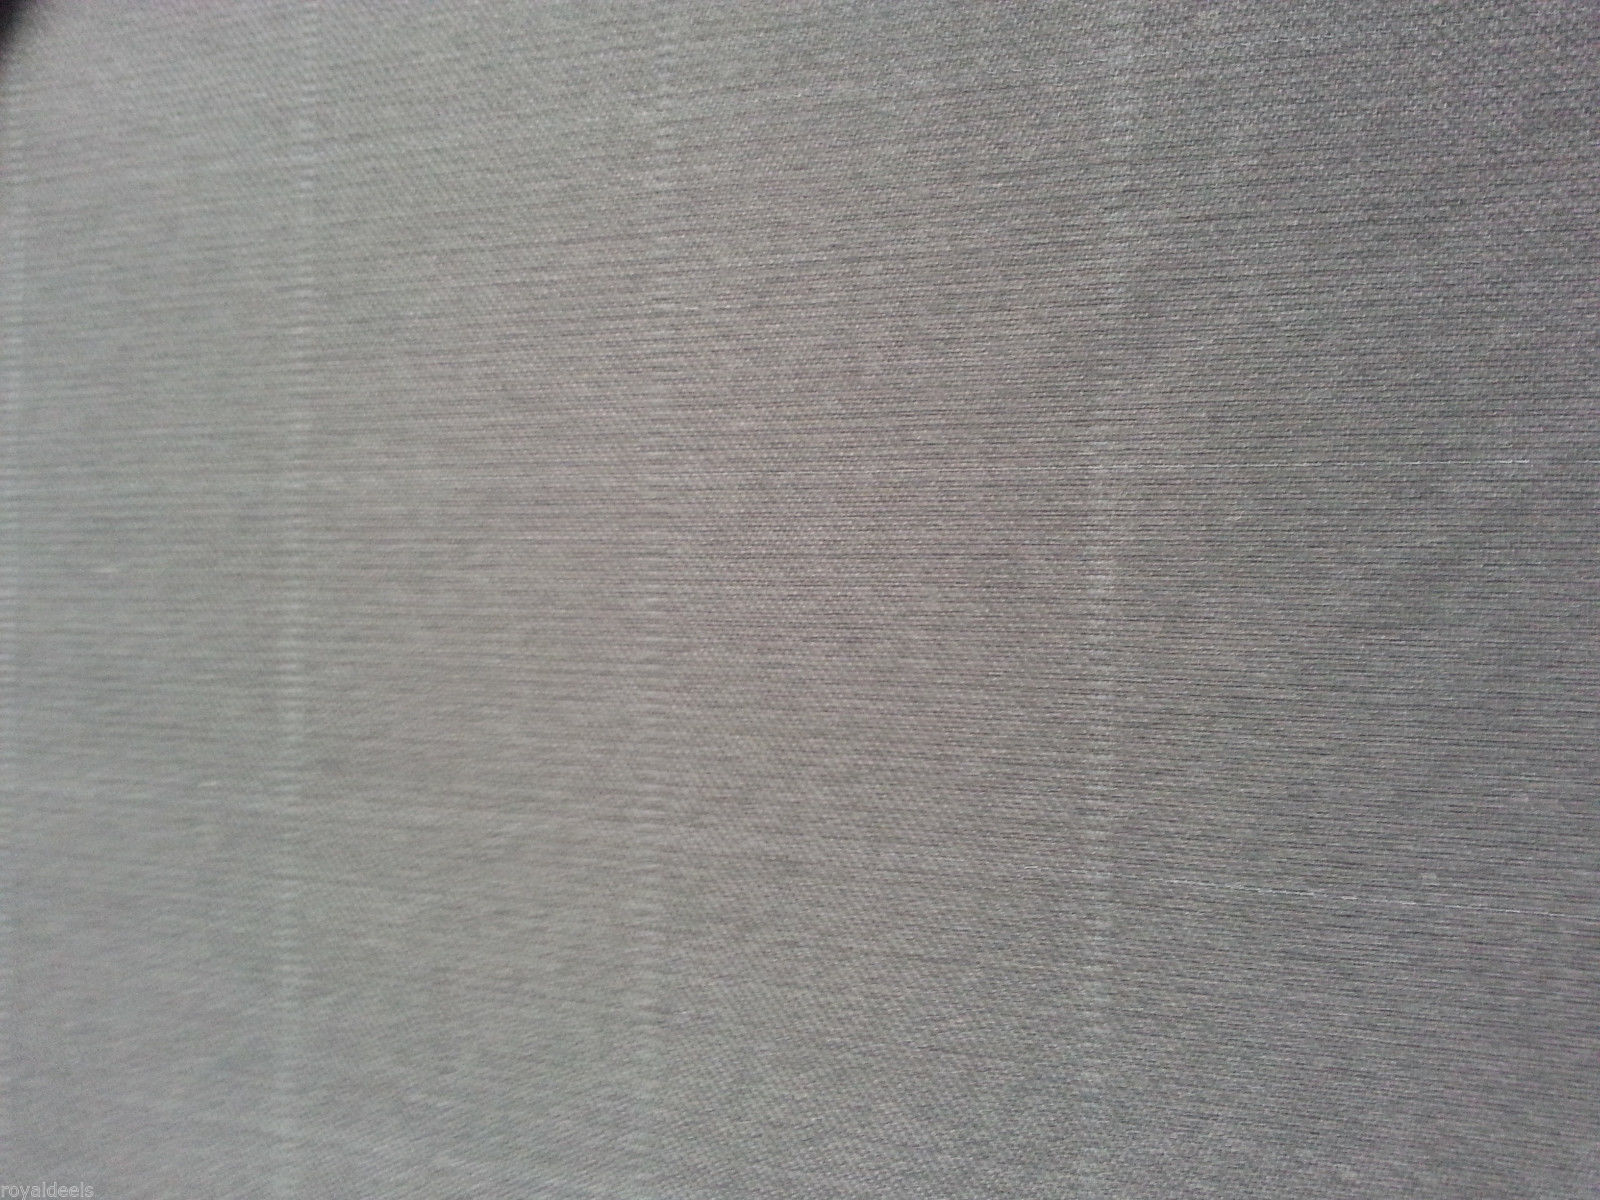 Super 130S fine italian wool Suit fabric  8.2 Yard  msrp 1495